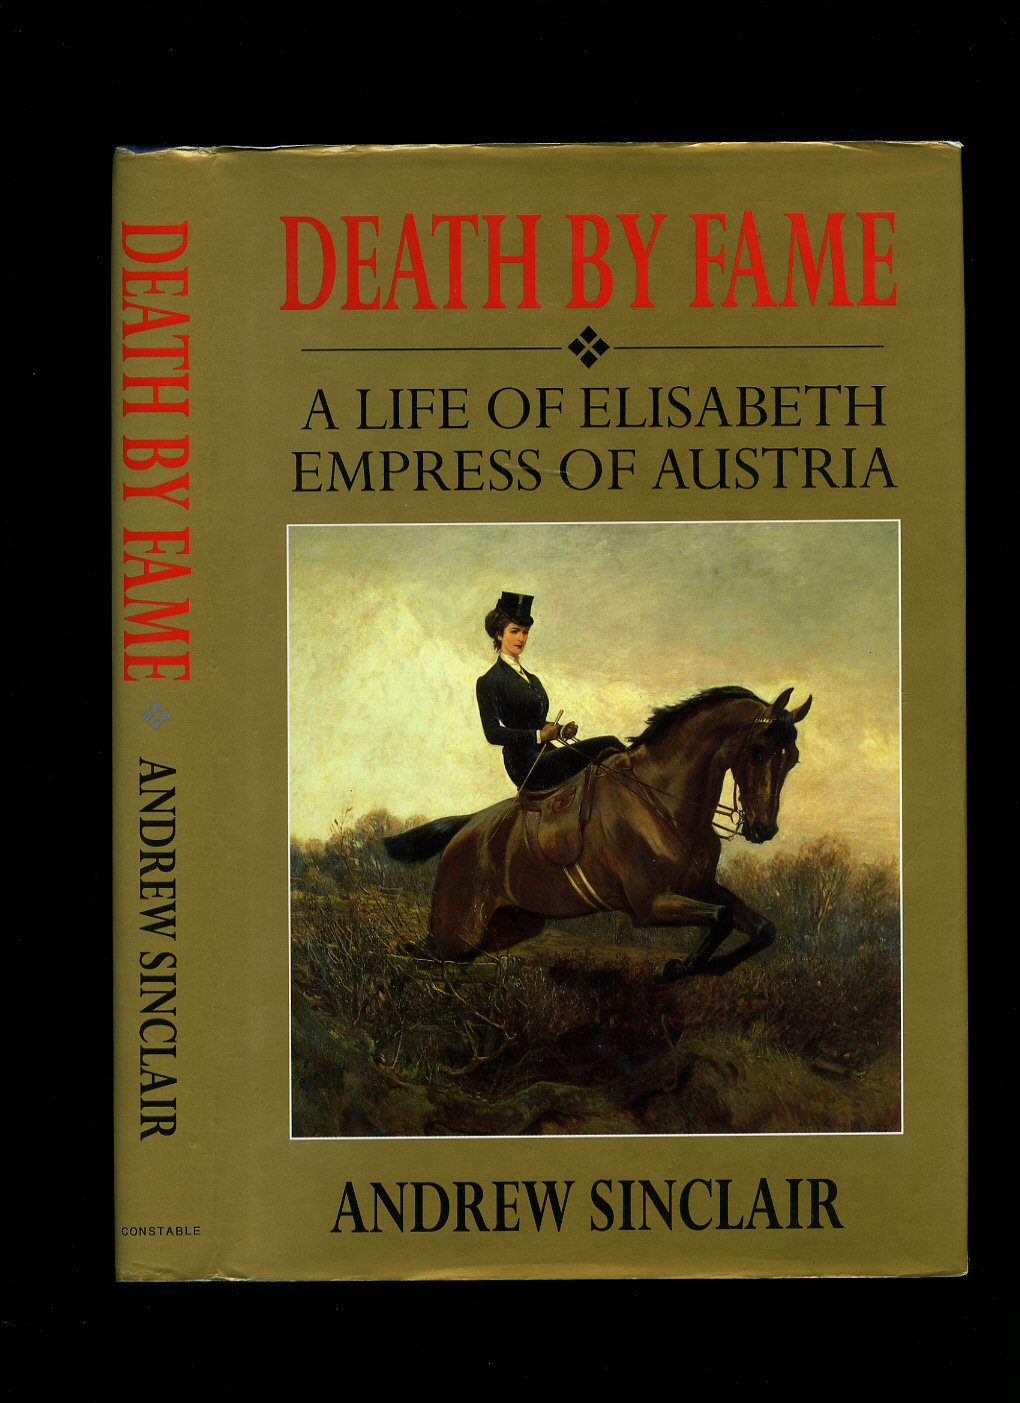 Death by Fame: A Life of Elisabeth, Empress of Austria